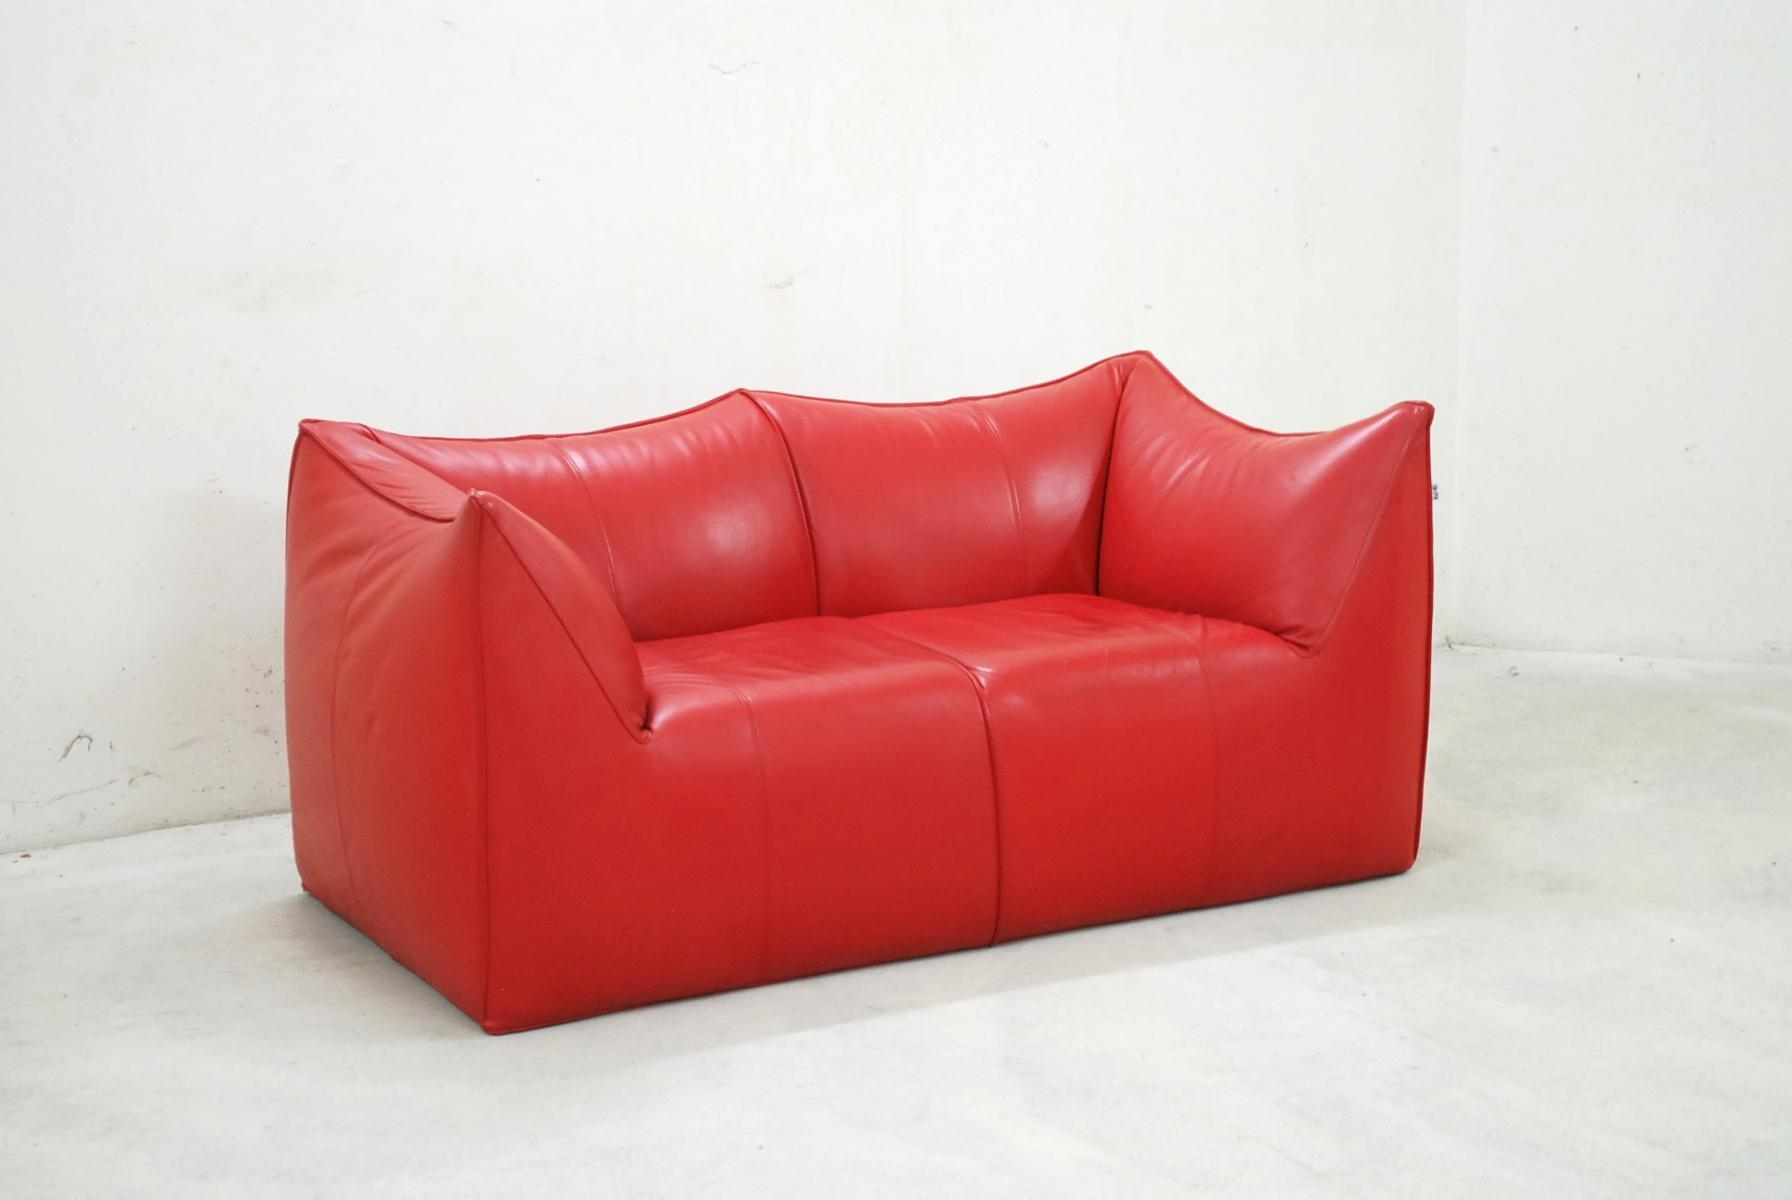 Italian Le Bambole Leather Sofamario Bellini For B&b Italia Intended For Bellini Couches (View 9 of 20)